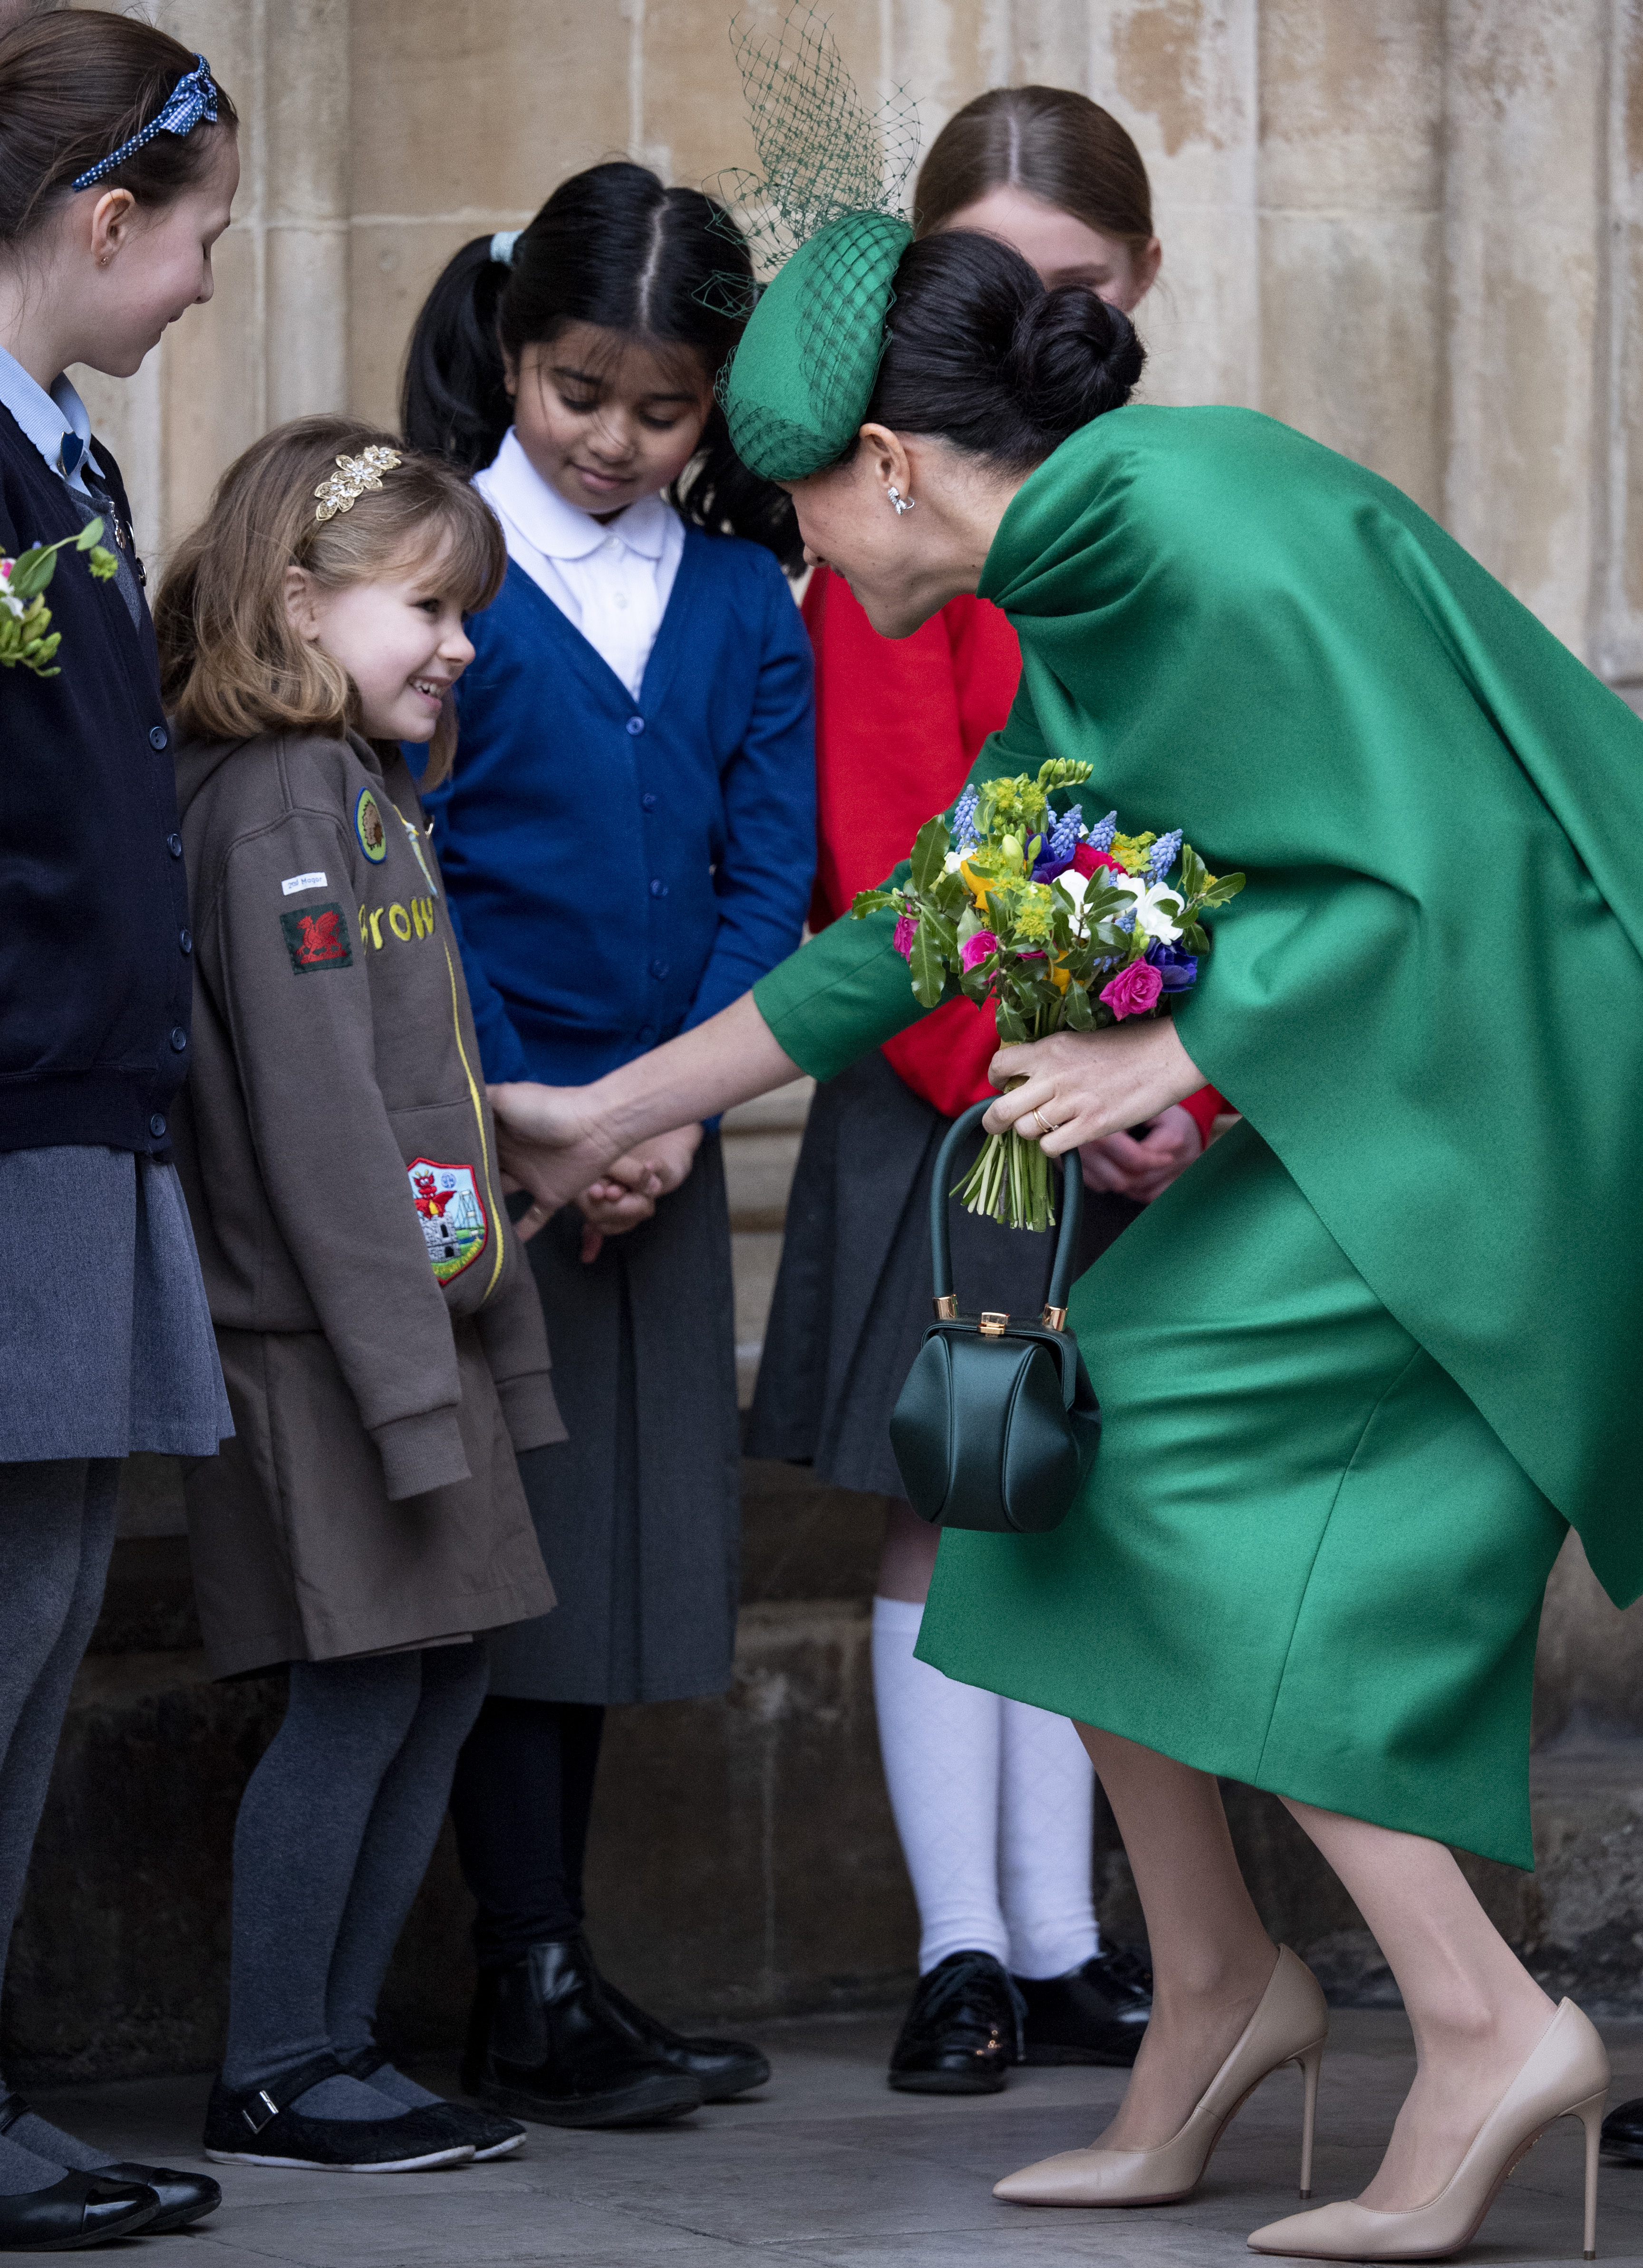 meghan markle kate middleton chat separately with same little girl amid royal reunion access 2